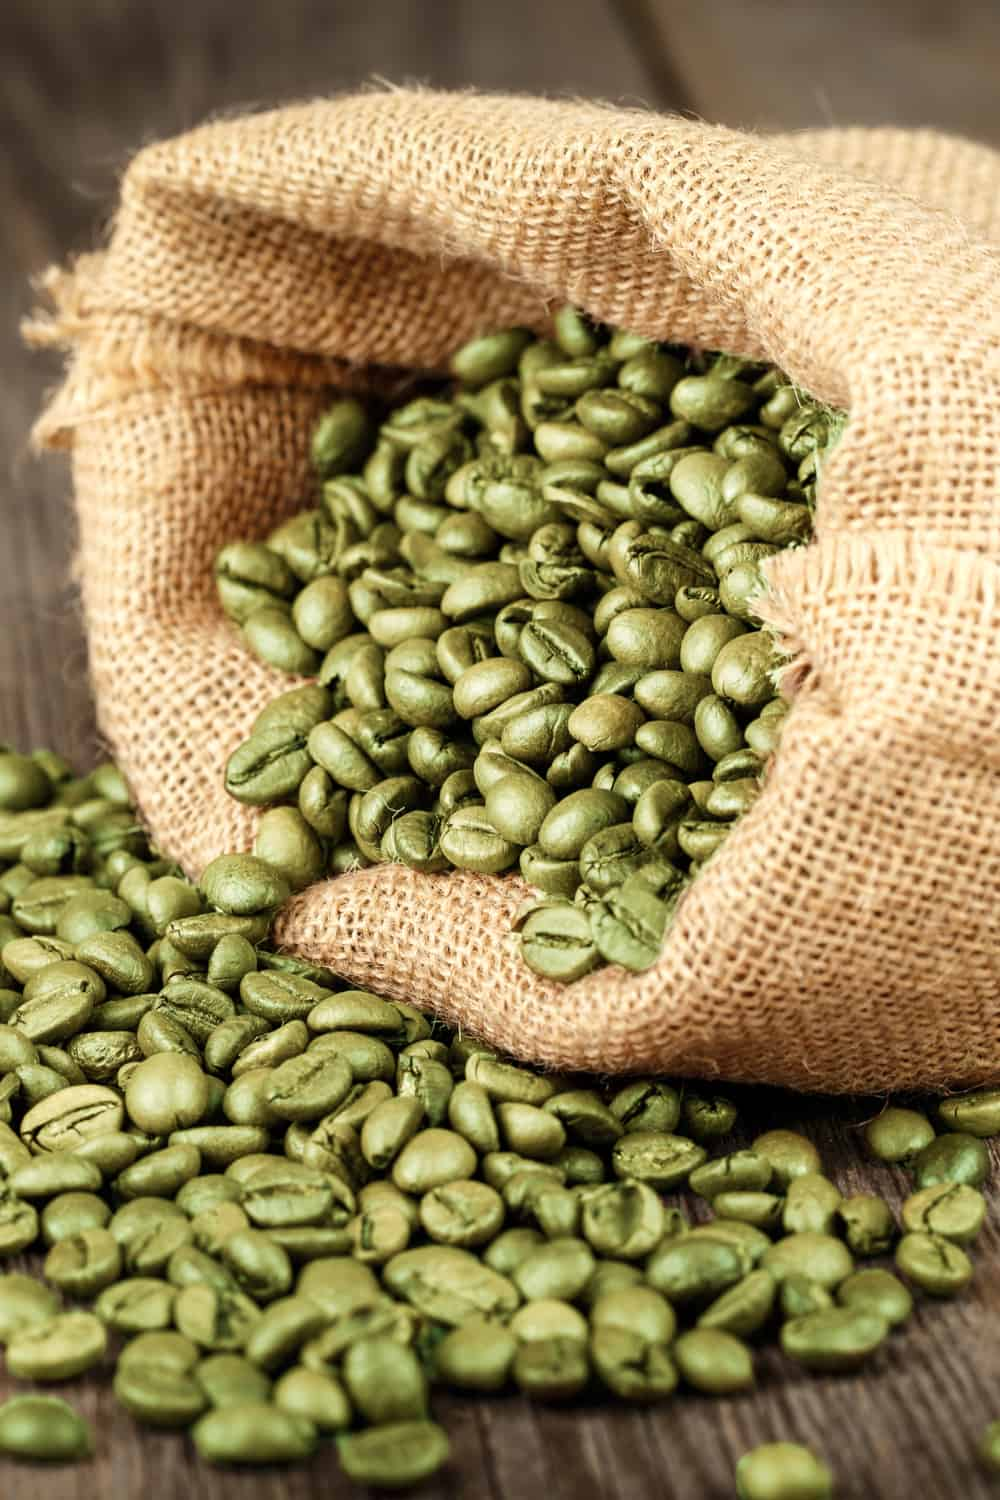 Consider buying green coffee beans